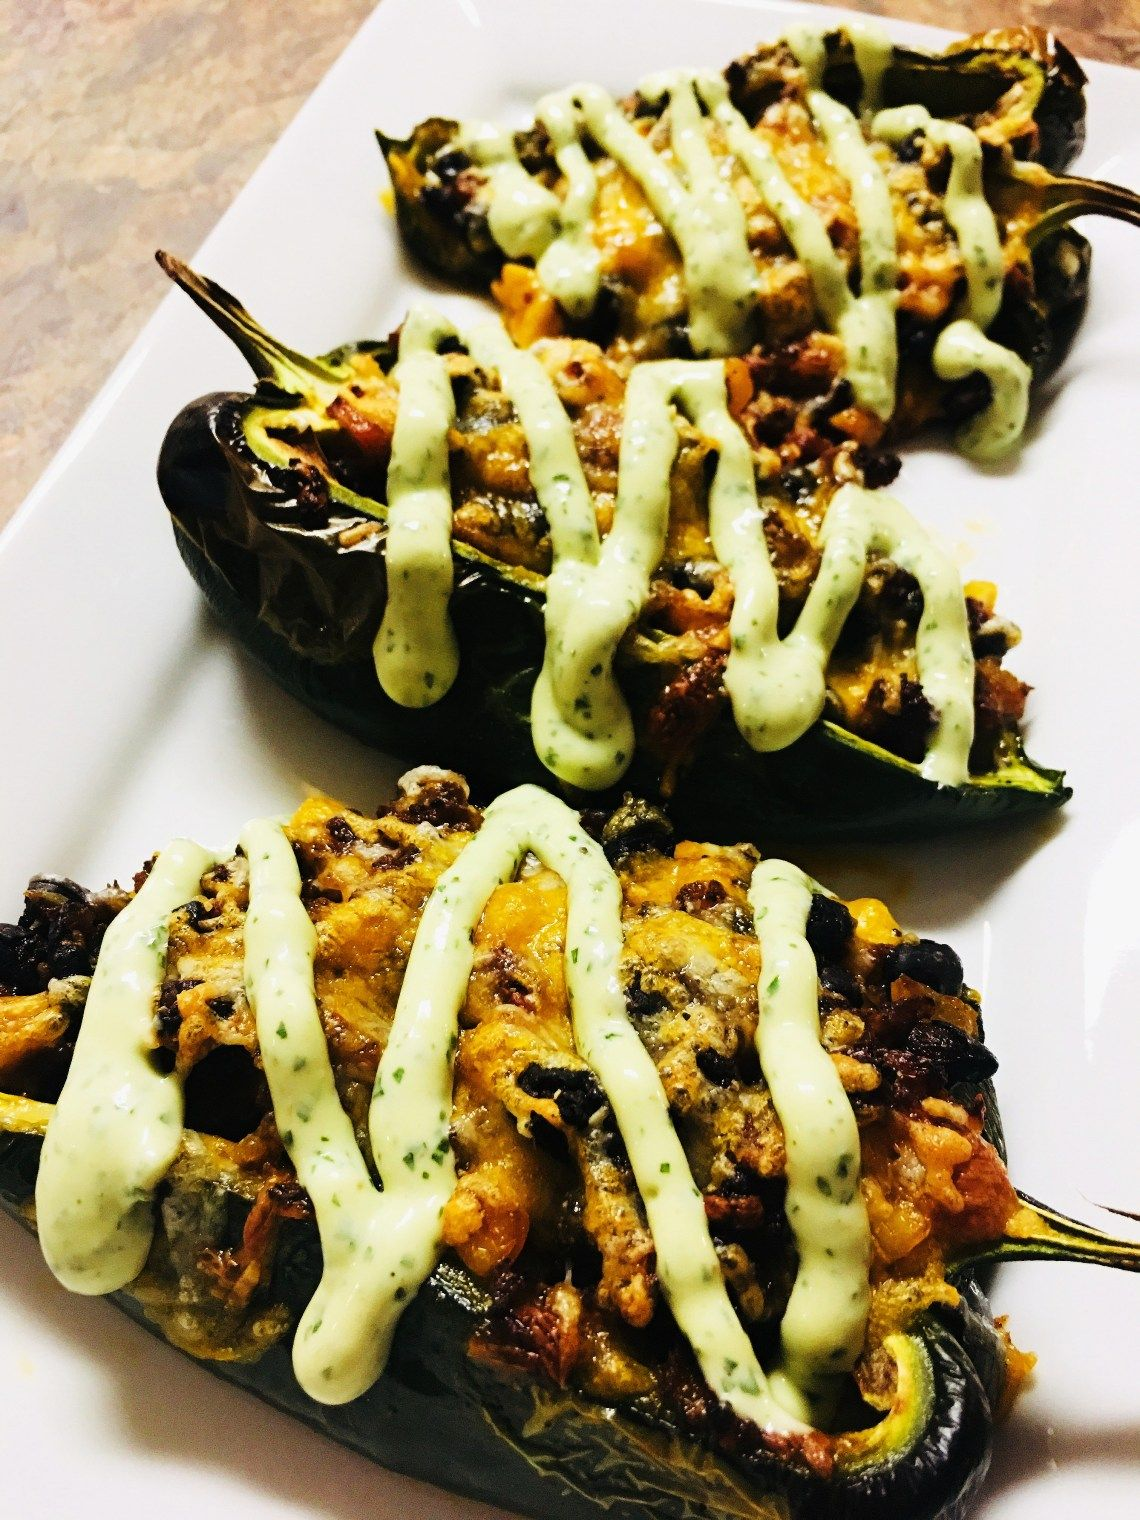 Chorizo Stuffed Poblanos With Avocado Cream Cooks Well With Others Stuffed Poblanos Superbowl Snacks Cooking